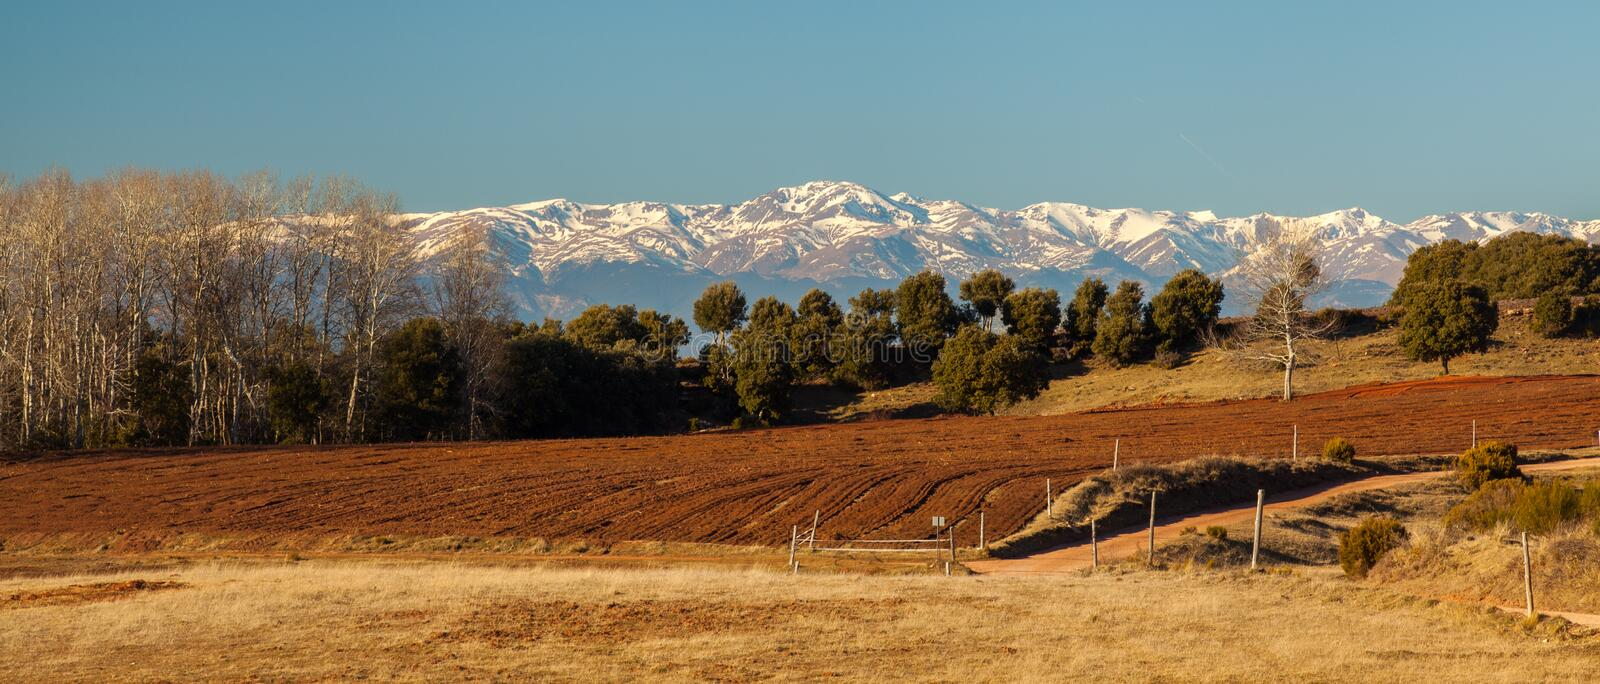 Pyrenees snow-covered mountains southern view royalty free stock image